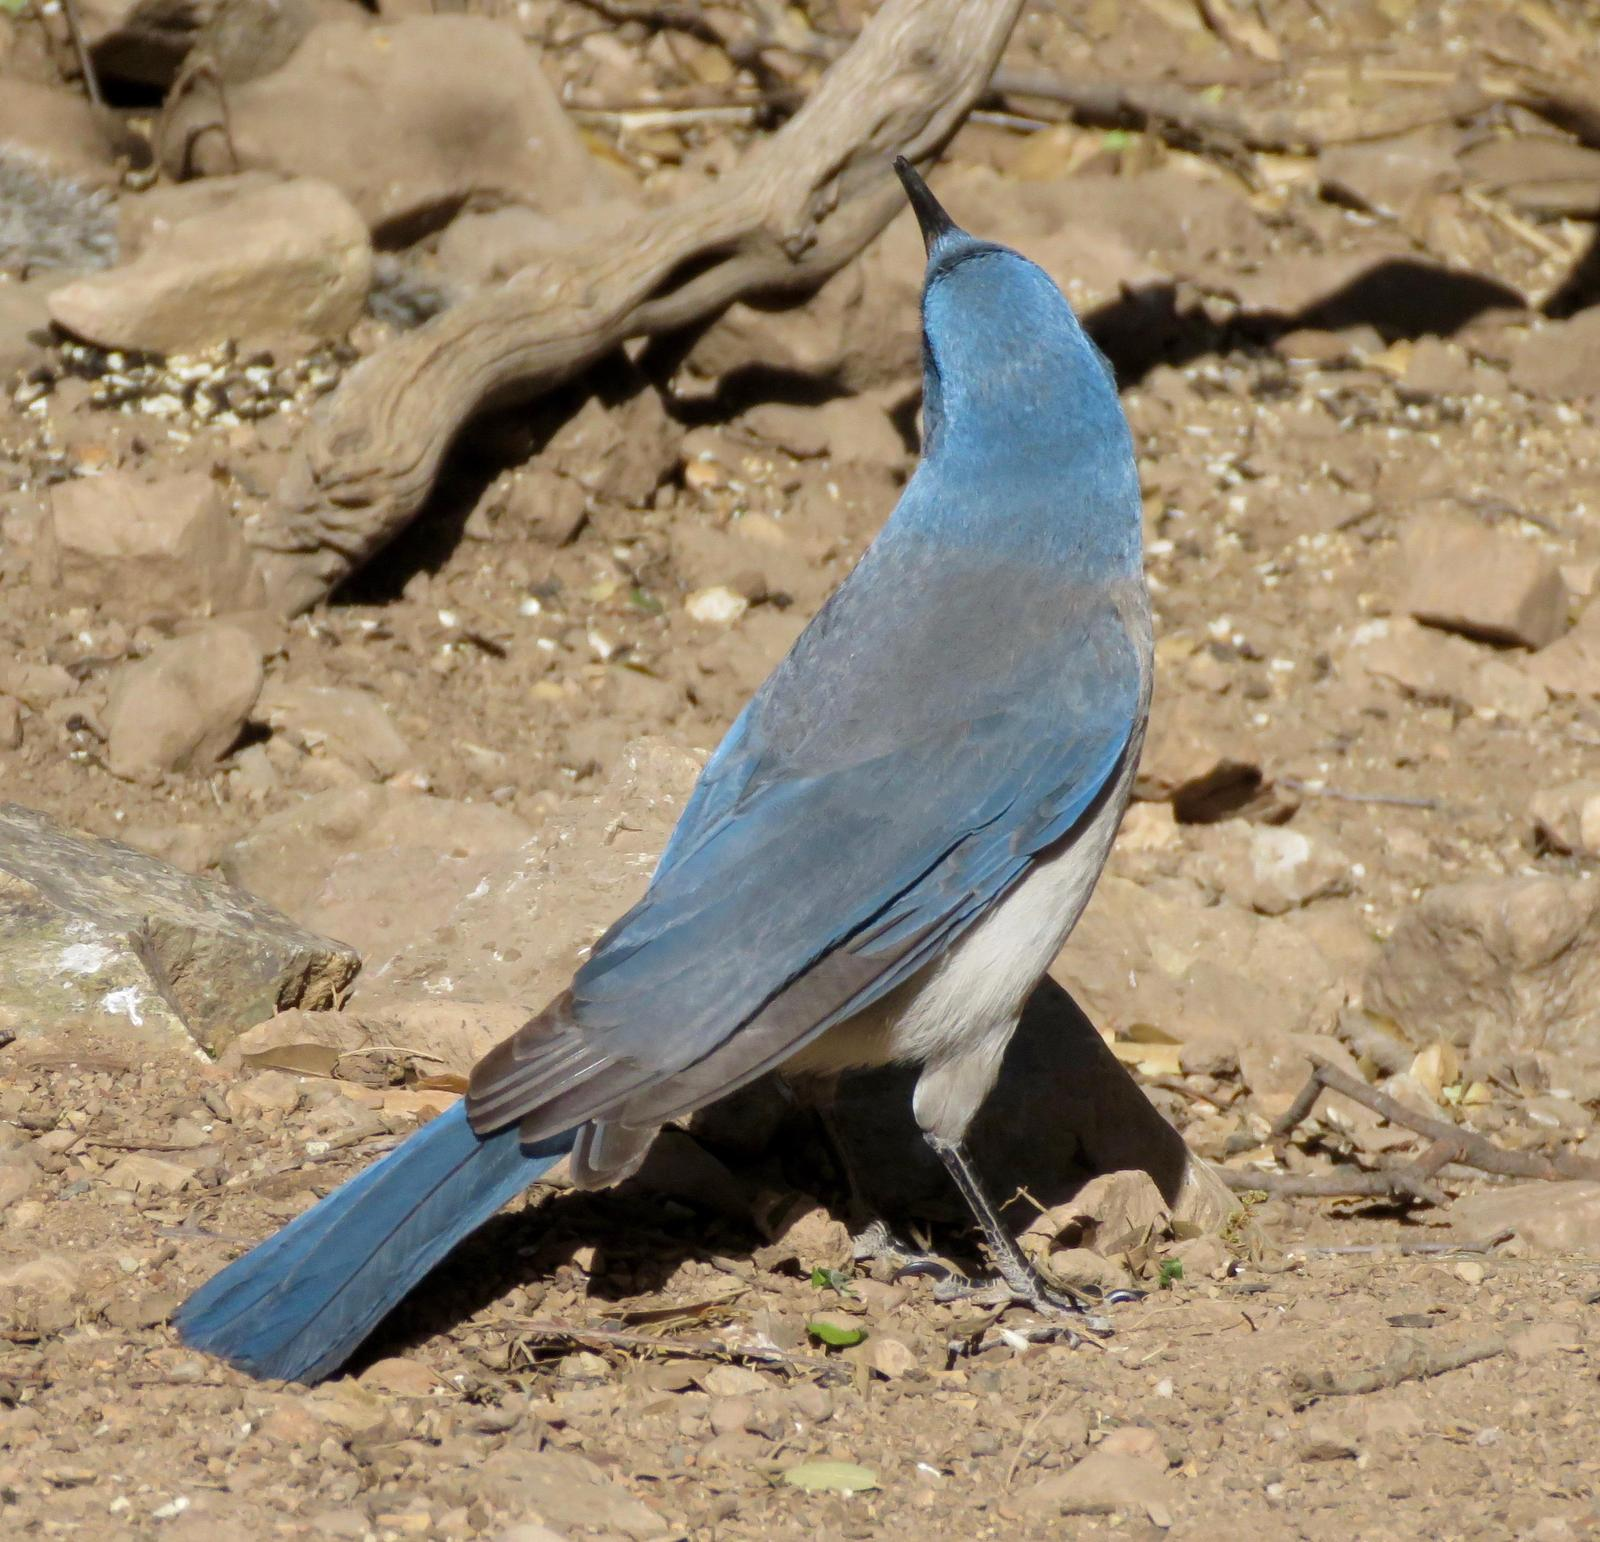 Mexican Jay (Arizona) Photo by Don Glasco